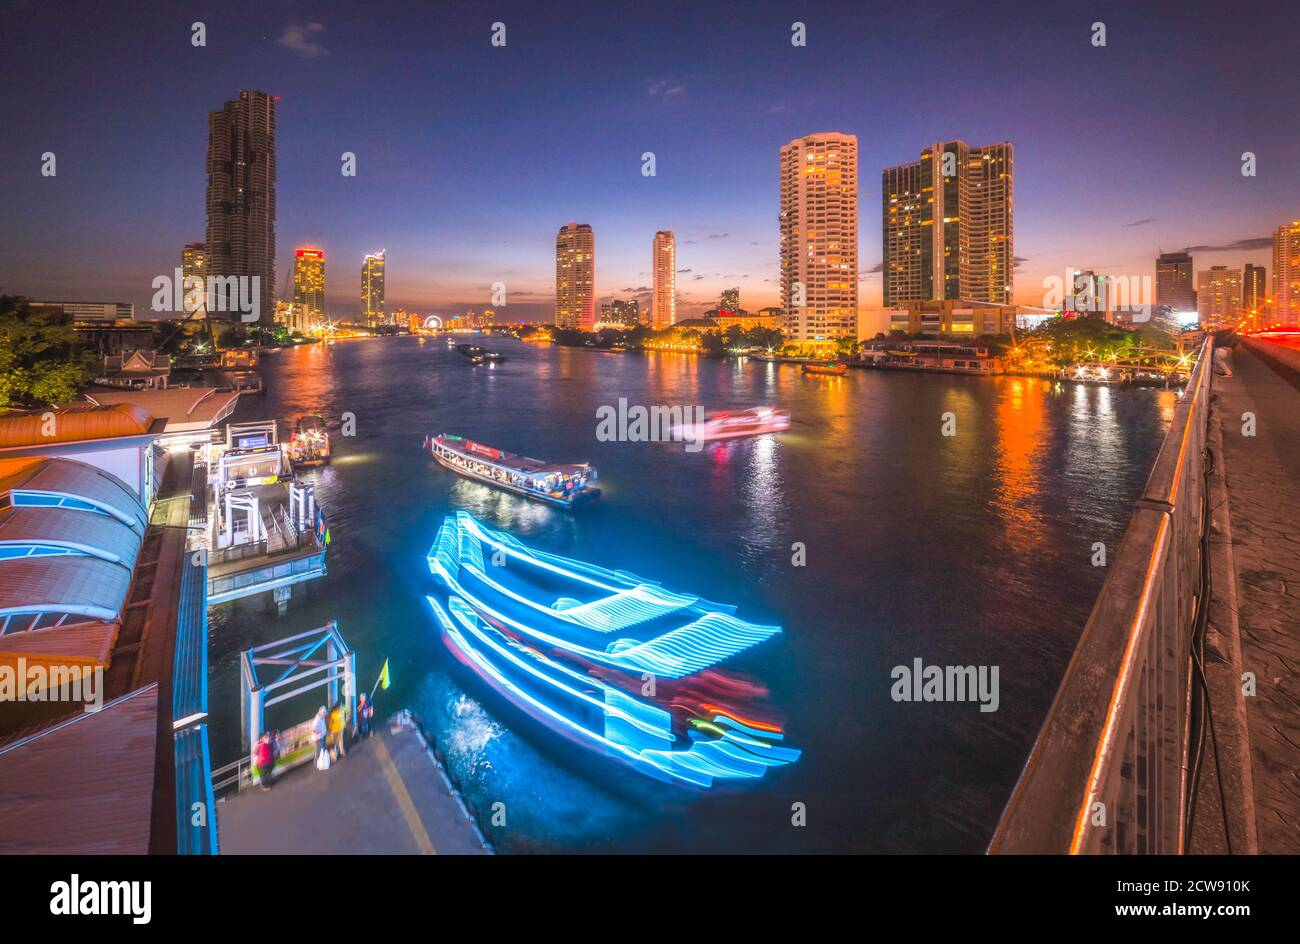 Skyscrapers and Light Trails of Traffic on the Chao Phraya River in Bangkok, Thailand as Seen from Taksin Bridge at Might Stock Photo